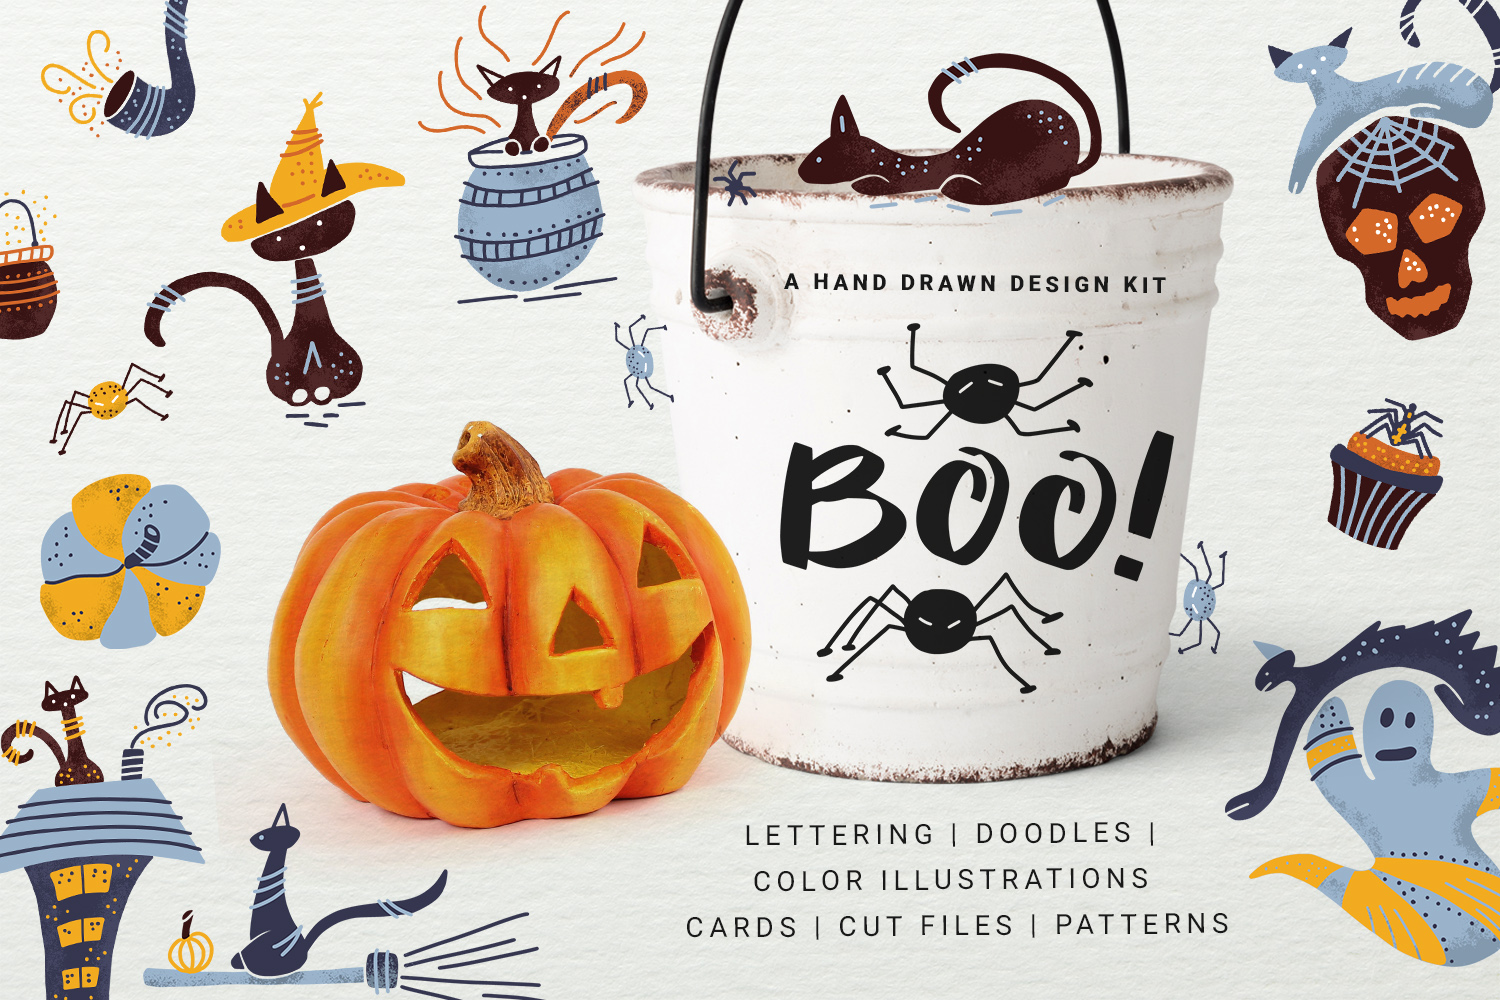 BOO! - Halloween design kit example image 1